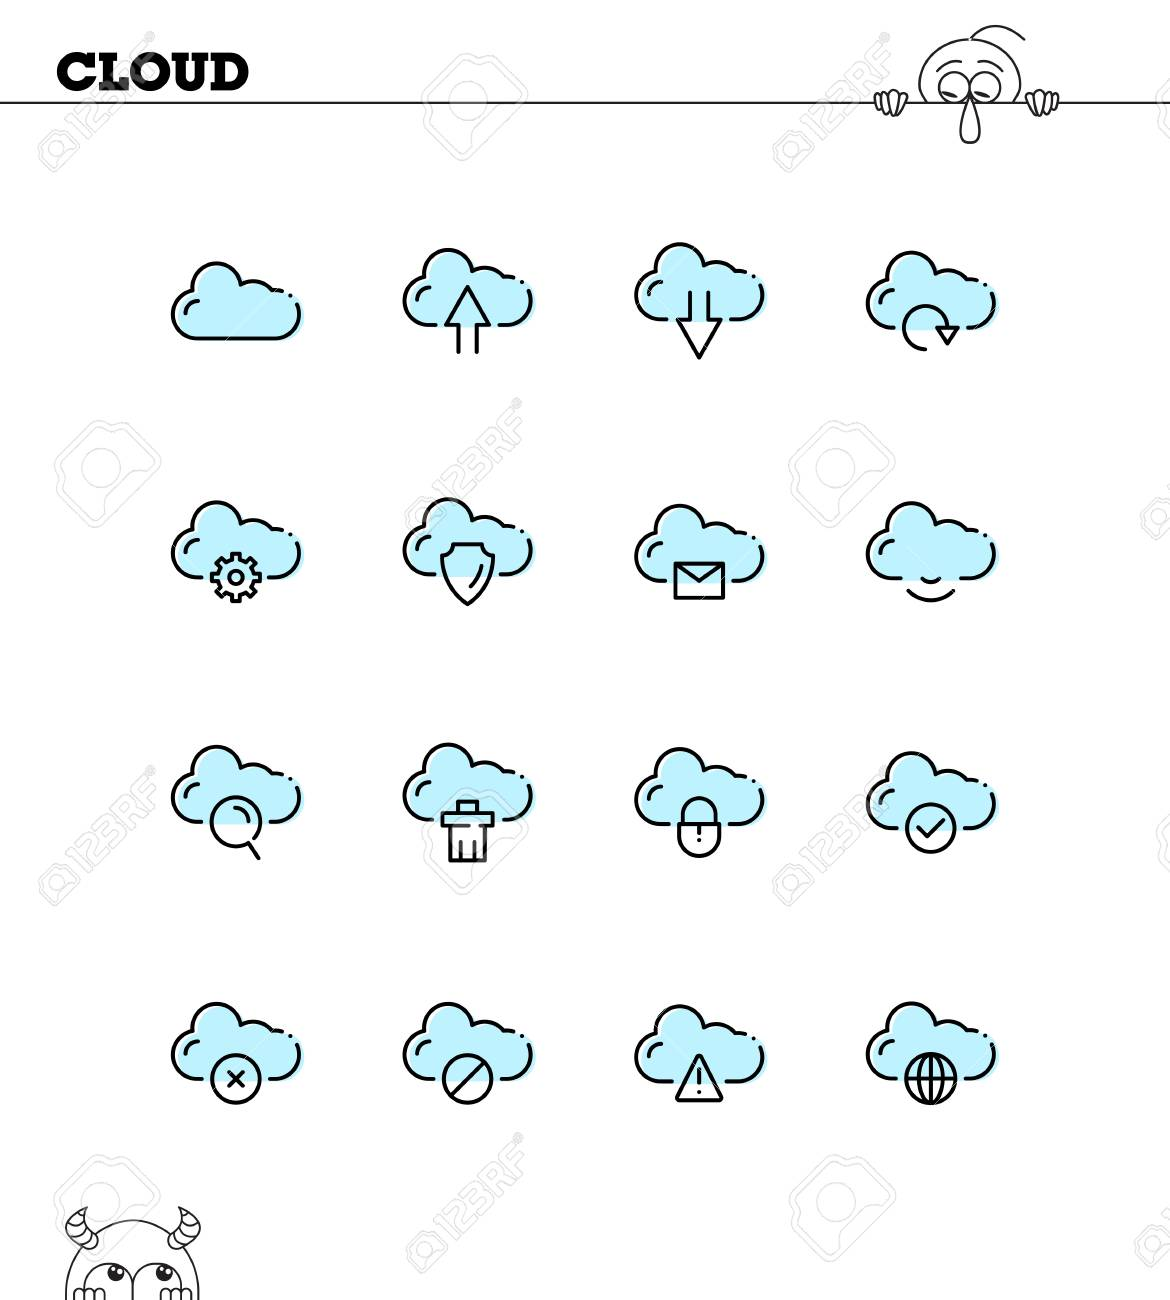 Cloud Flat Icon Set Collection Of High Quality Outline Symbols For